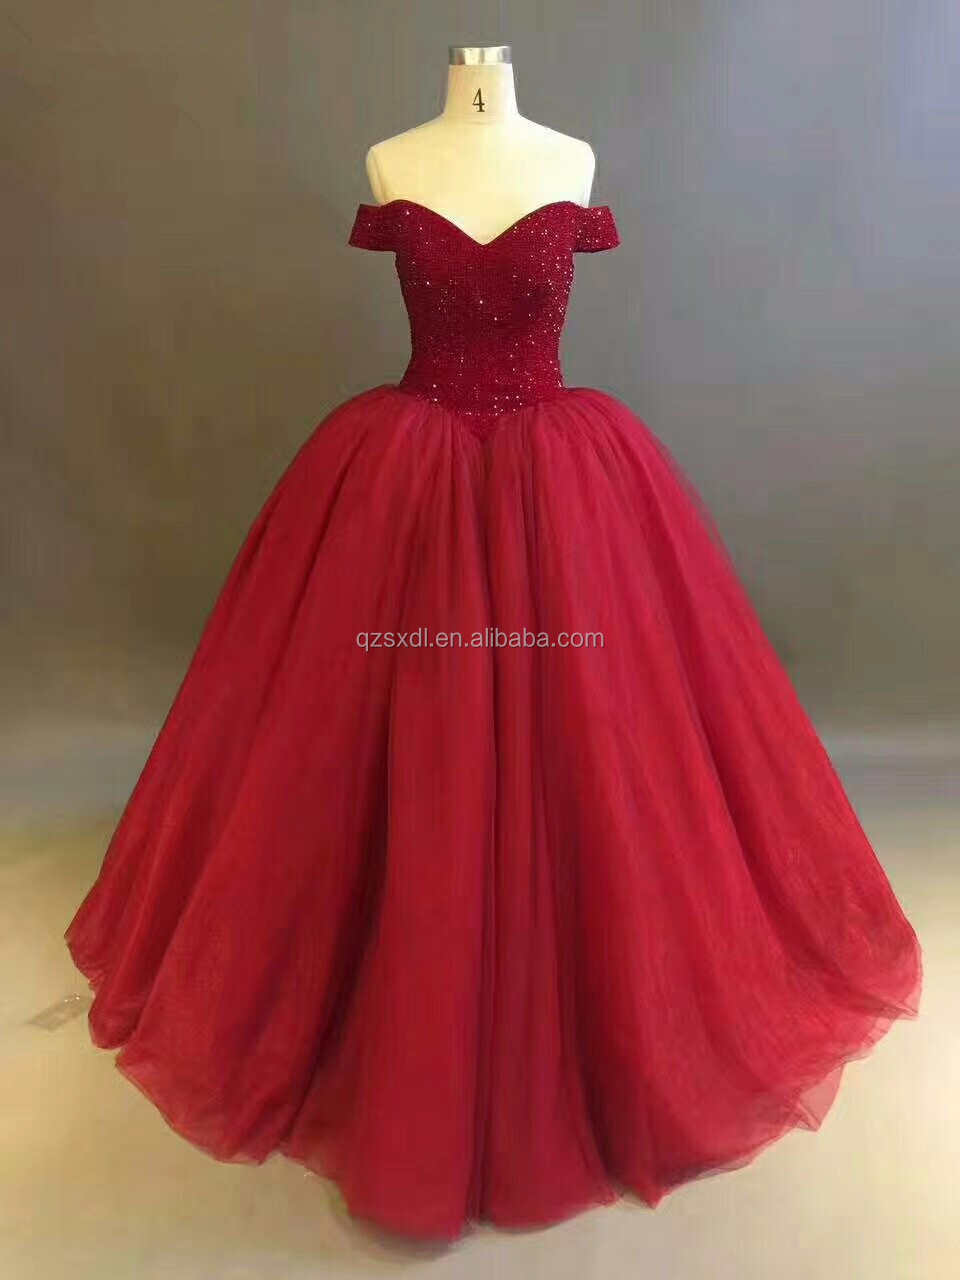 China Oem Ball Gown Crystal Top Off Shoulder Beautiful Red Wedding ...